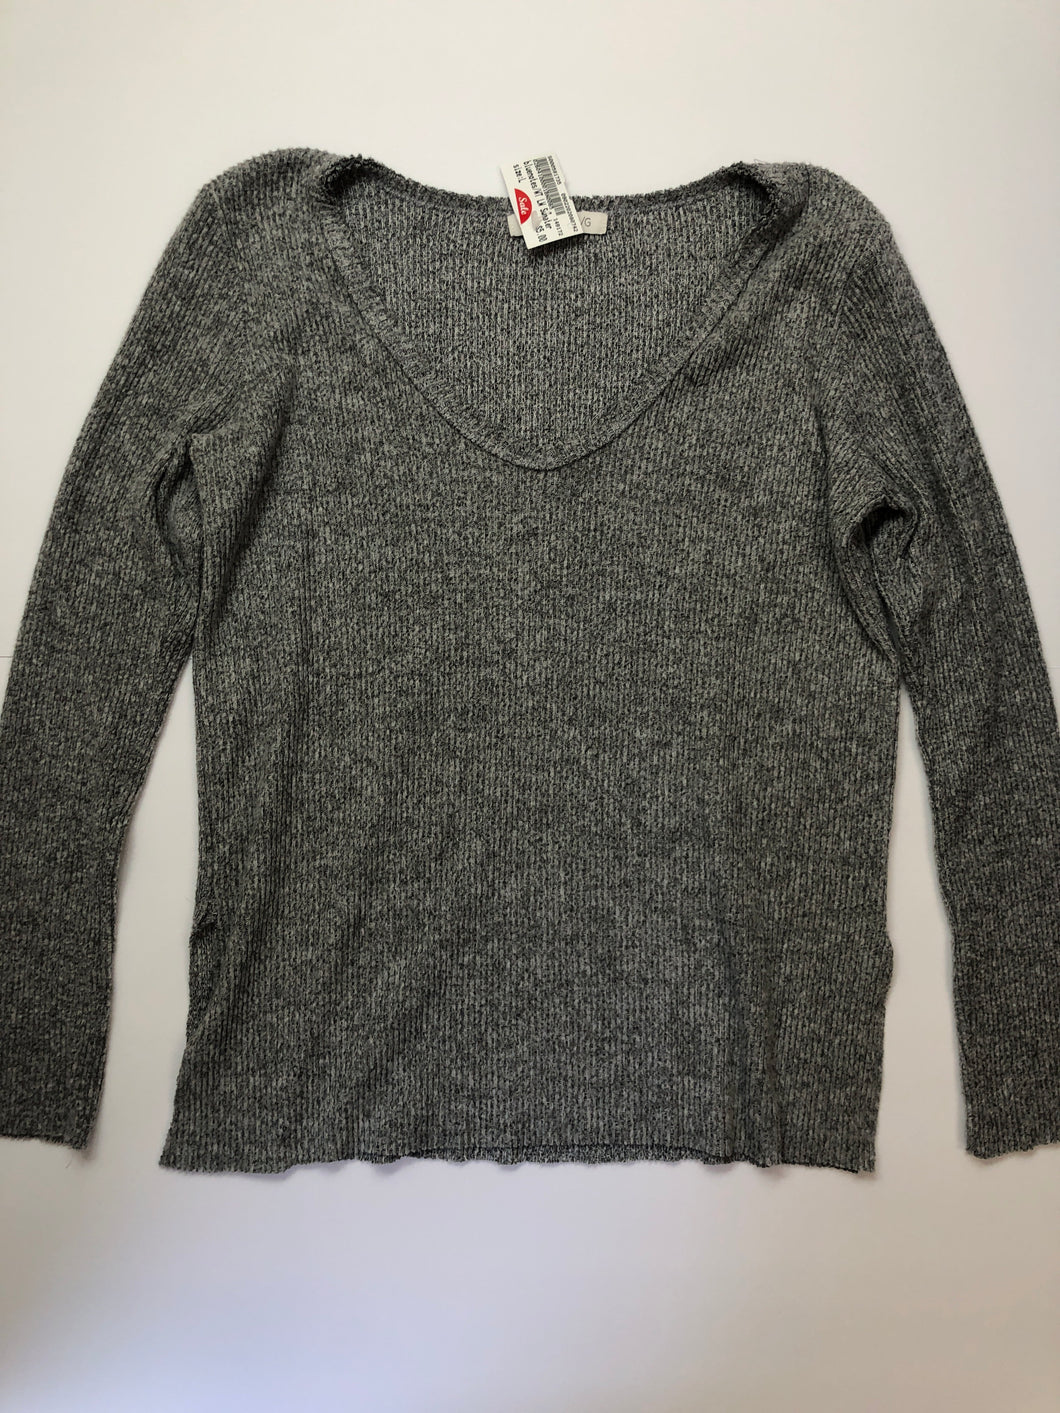 Gently Used Women's Bluenotes Top Size L